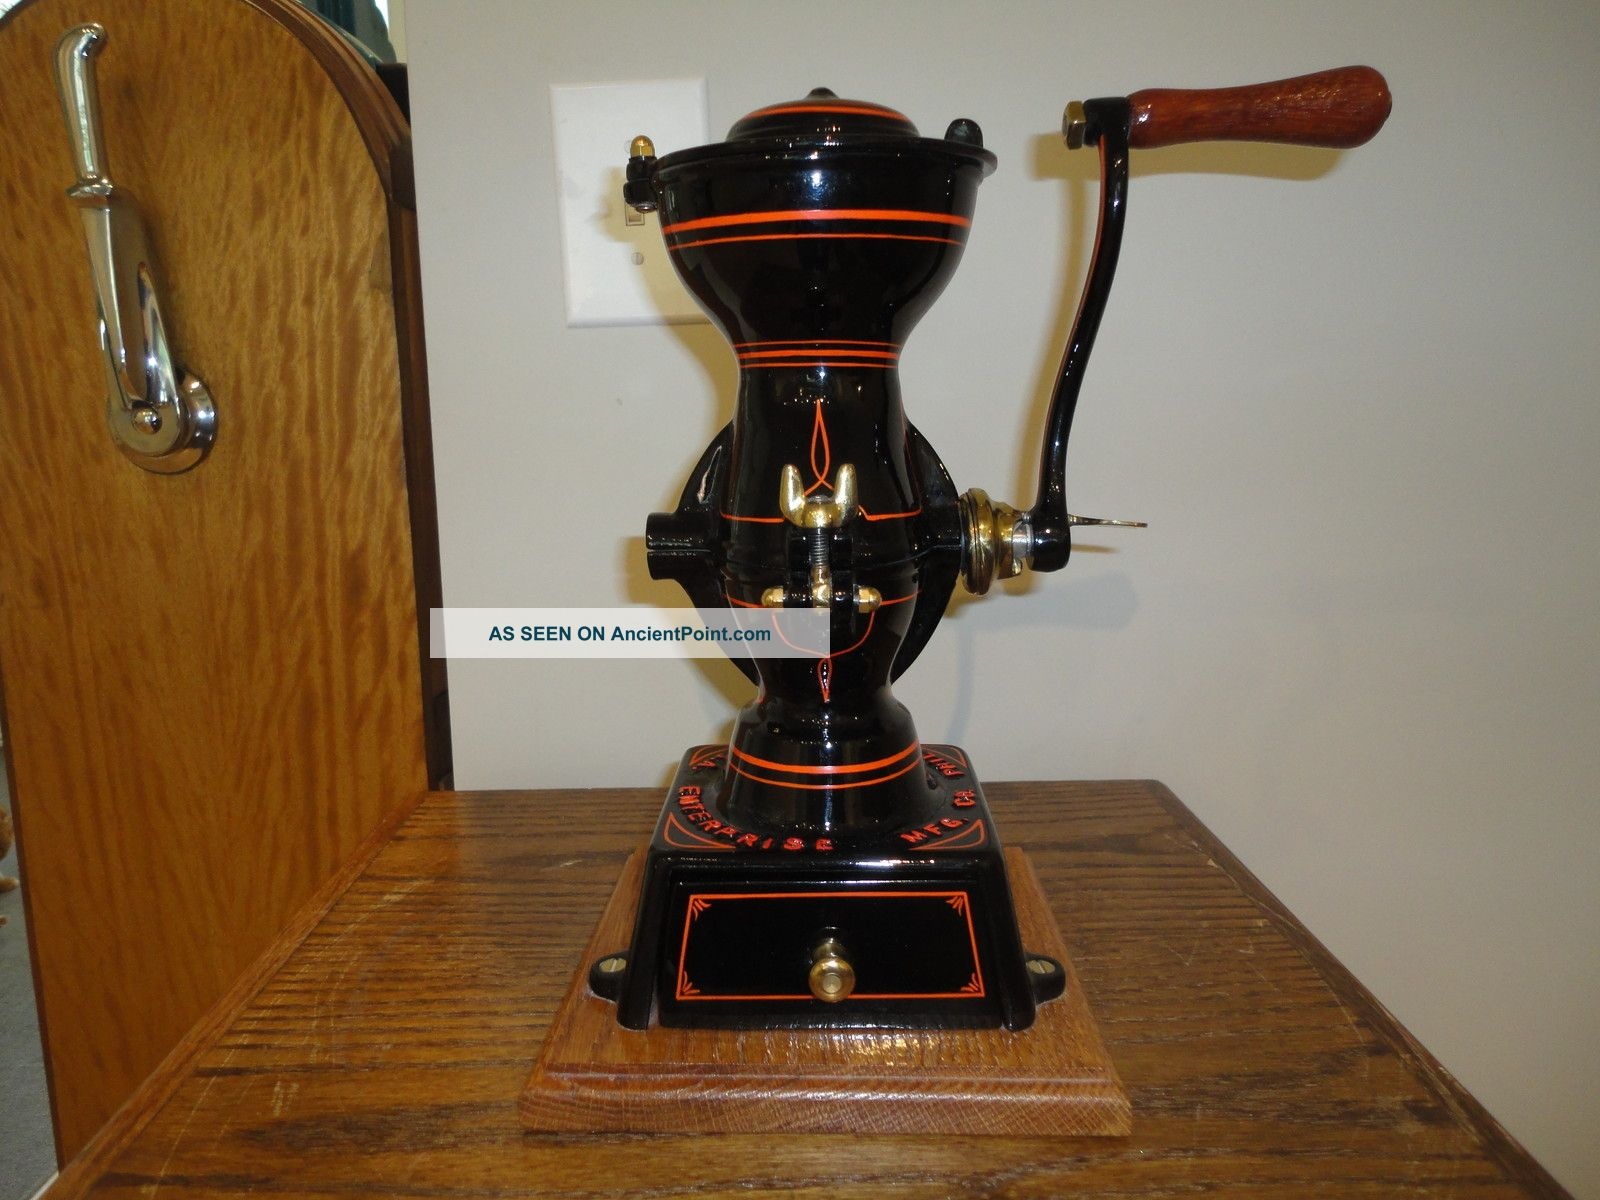 Antique Coffee Grinder Mills Entrprise Other photo